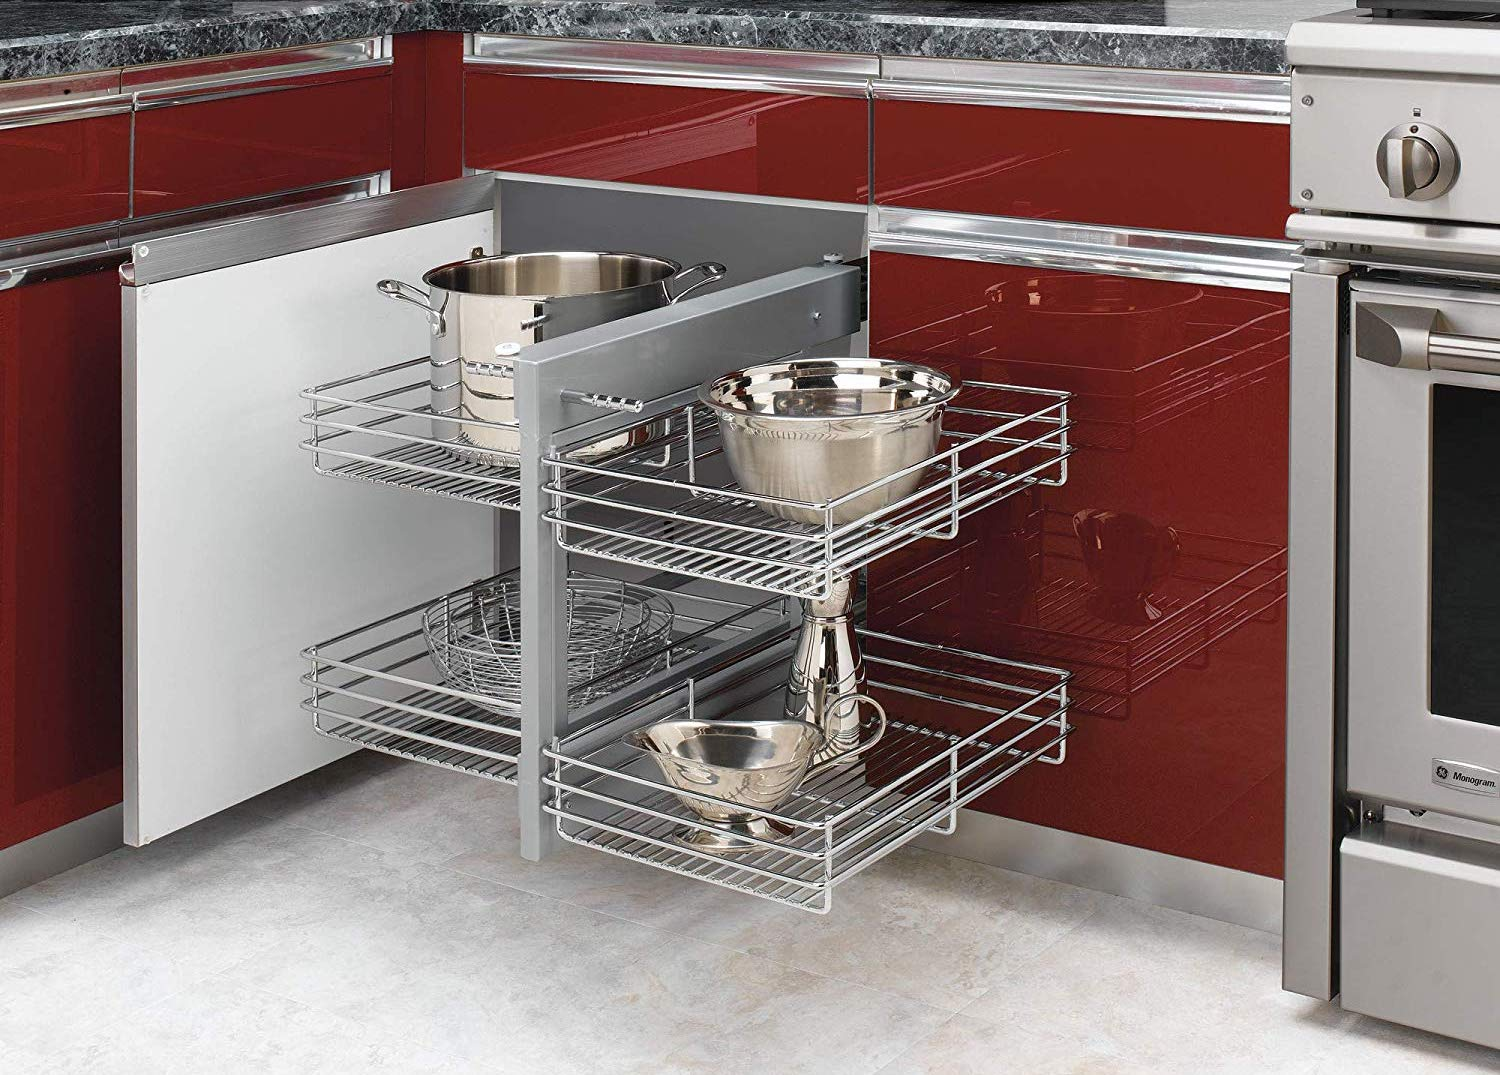 Metal storage cabinets that slide out to optimize corner space.